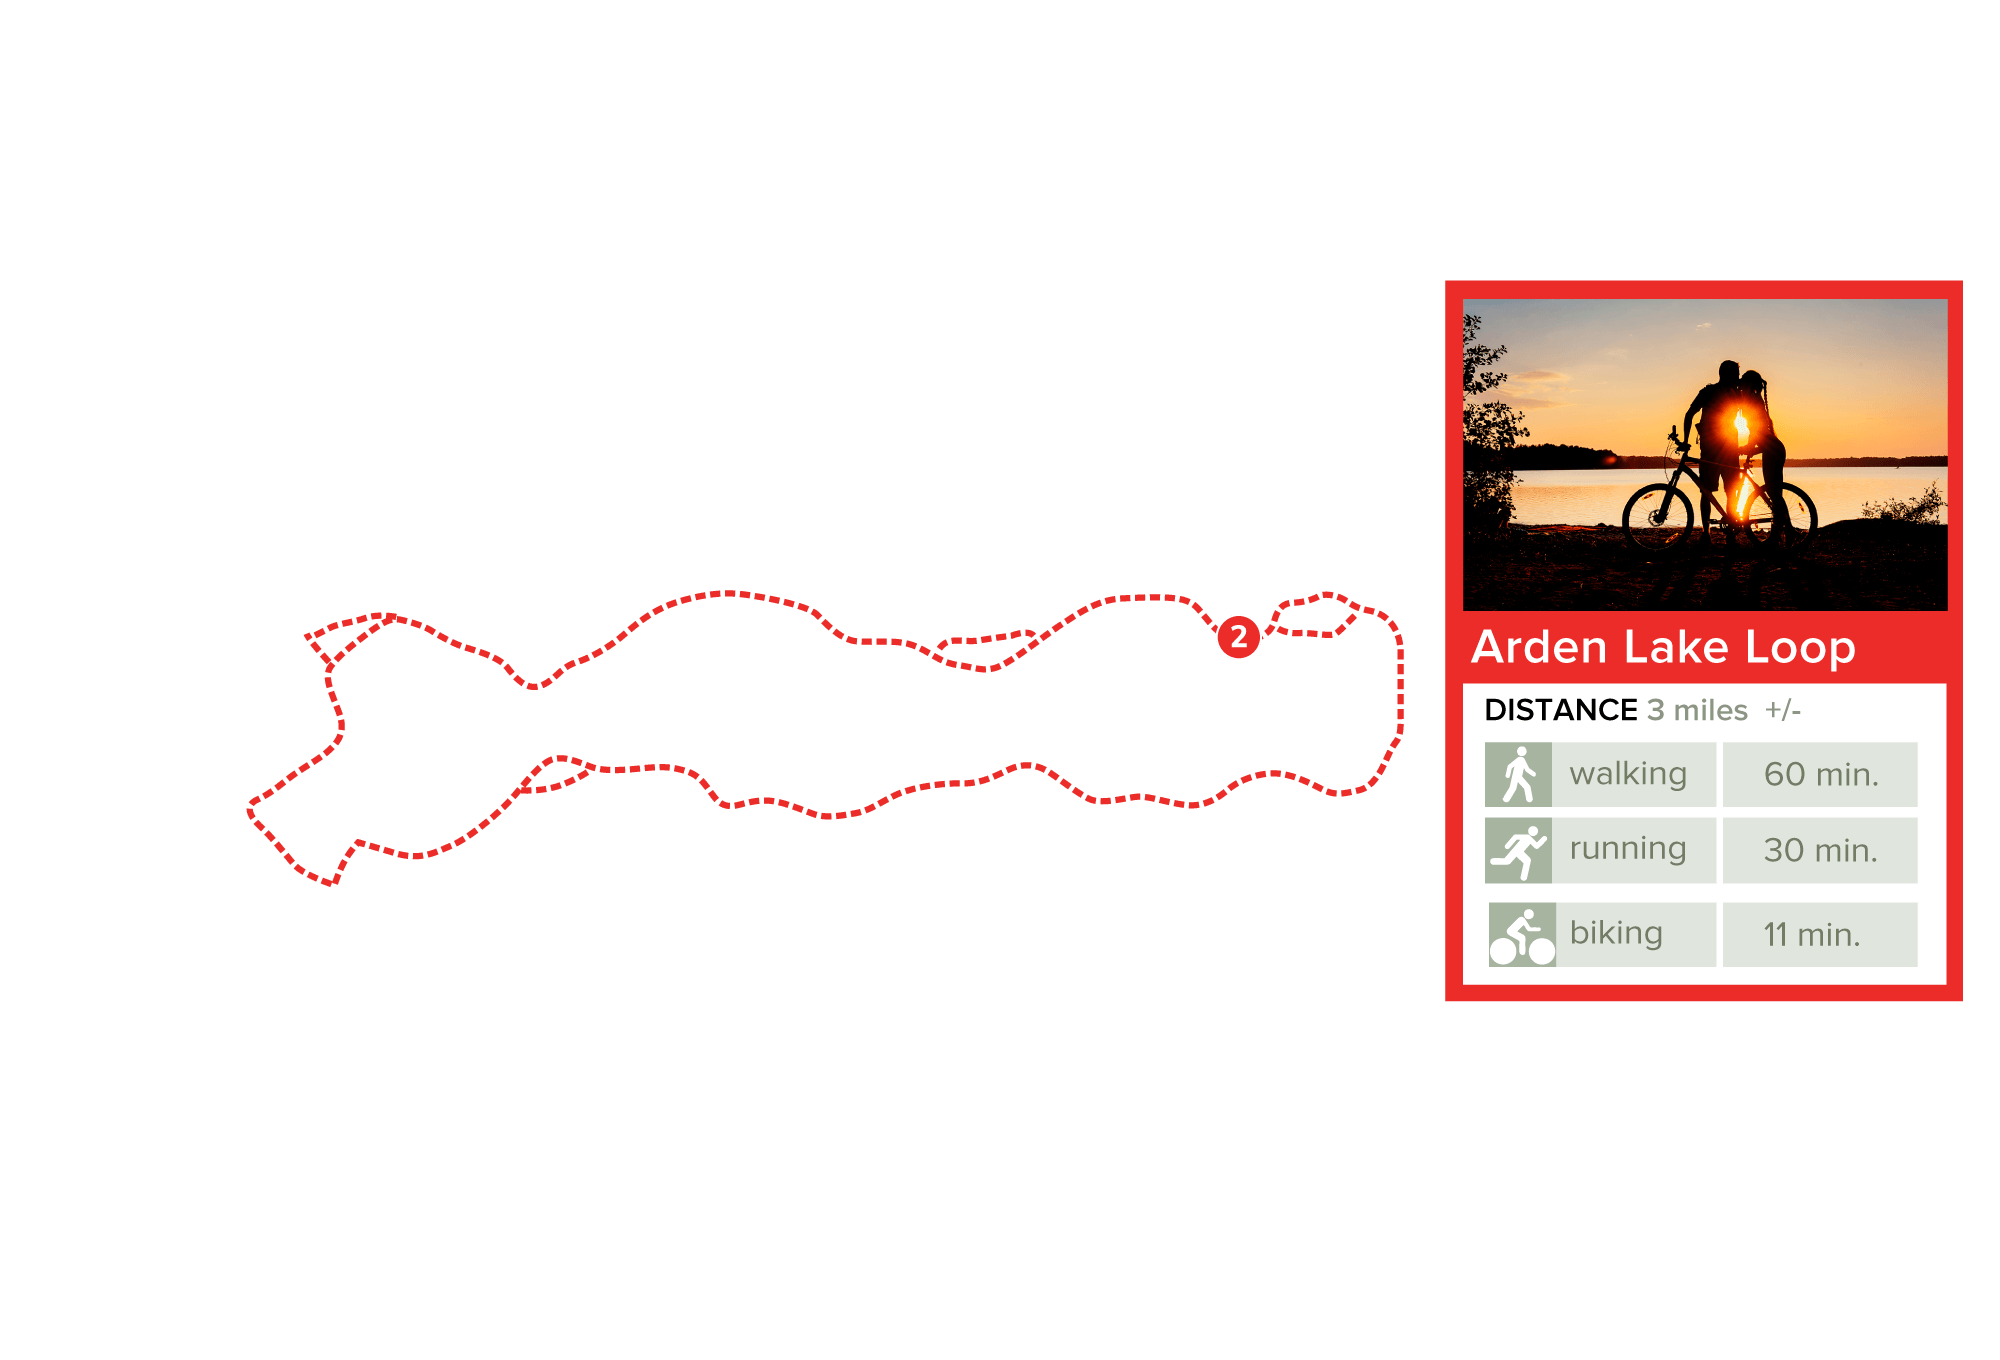 Arden graphic depicting the Arden Lake Loop